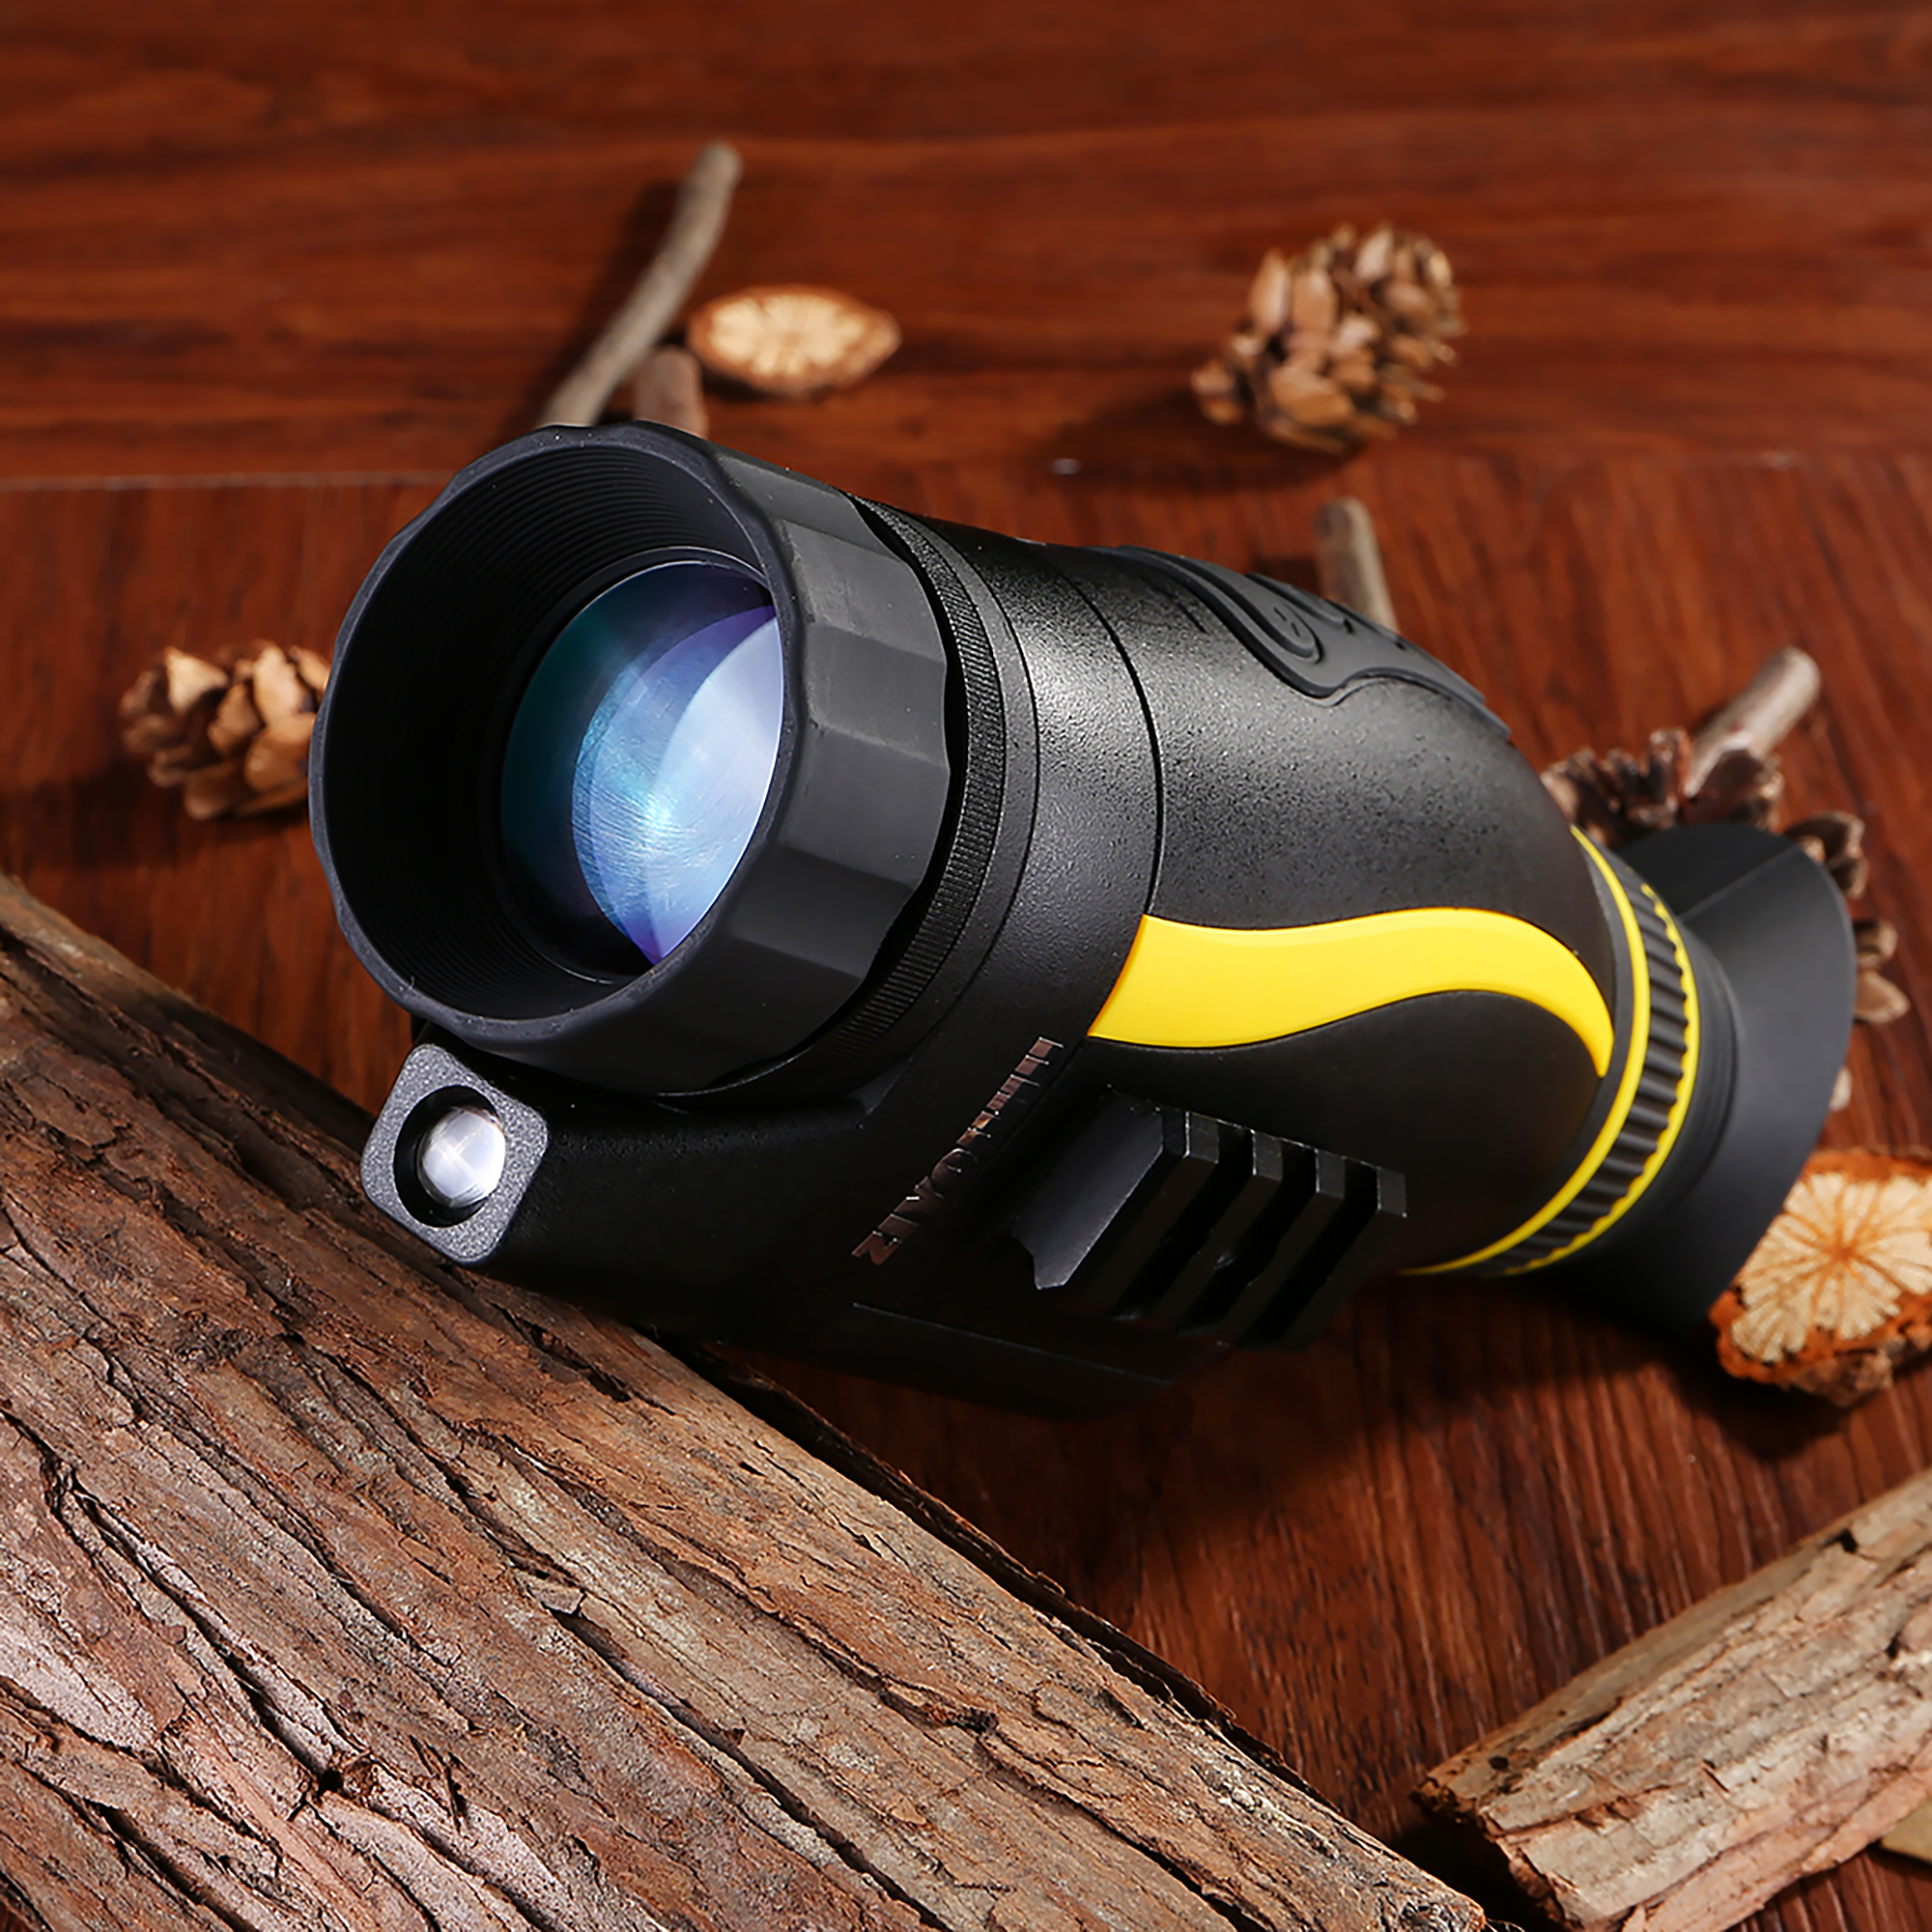 ZIYOUHU New HD Digital Night Vision Scope 4 Times Day and Night Monocular Telescope Infrared Night Viewer for Hunting Scope